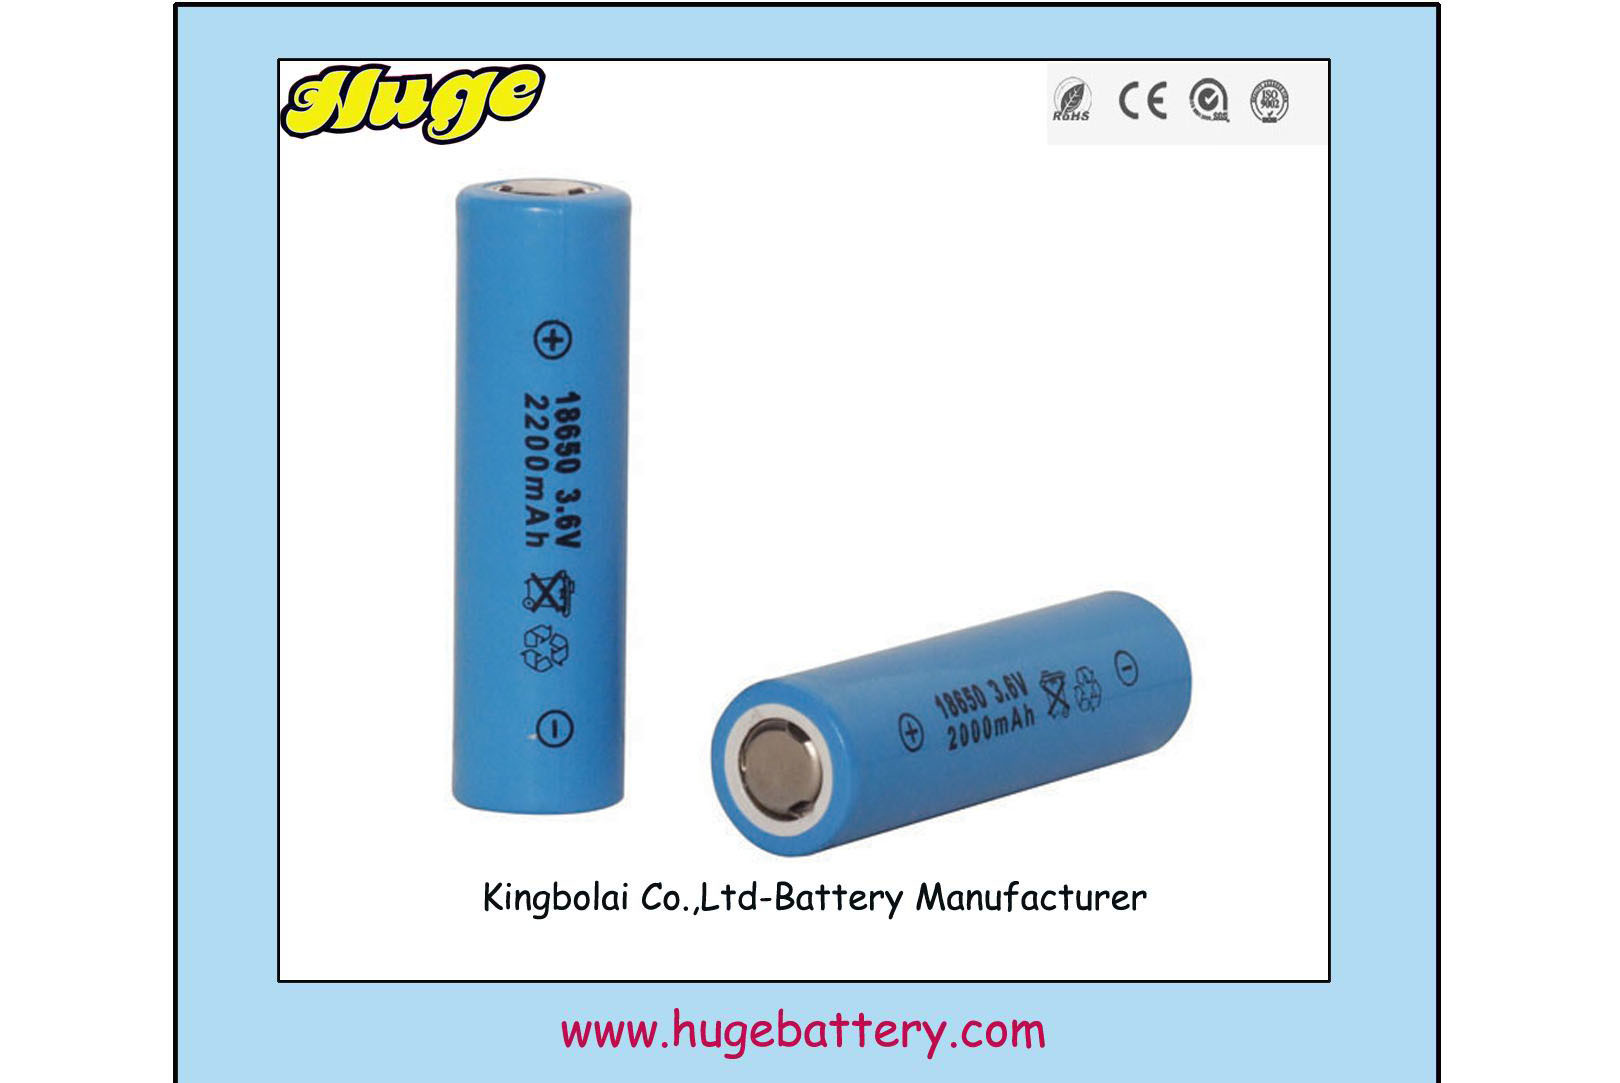 Rechargeable Lithium Ion/Polymer Battery for LED lights ( 18650 2700mAh)